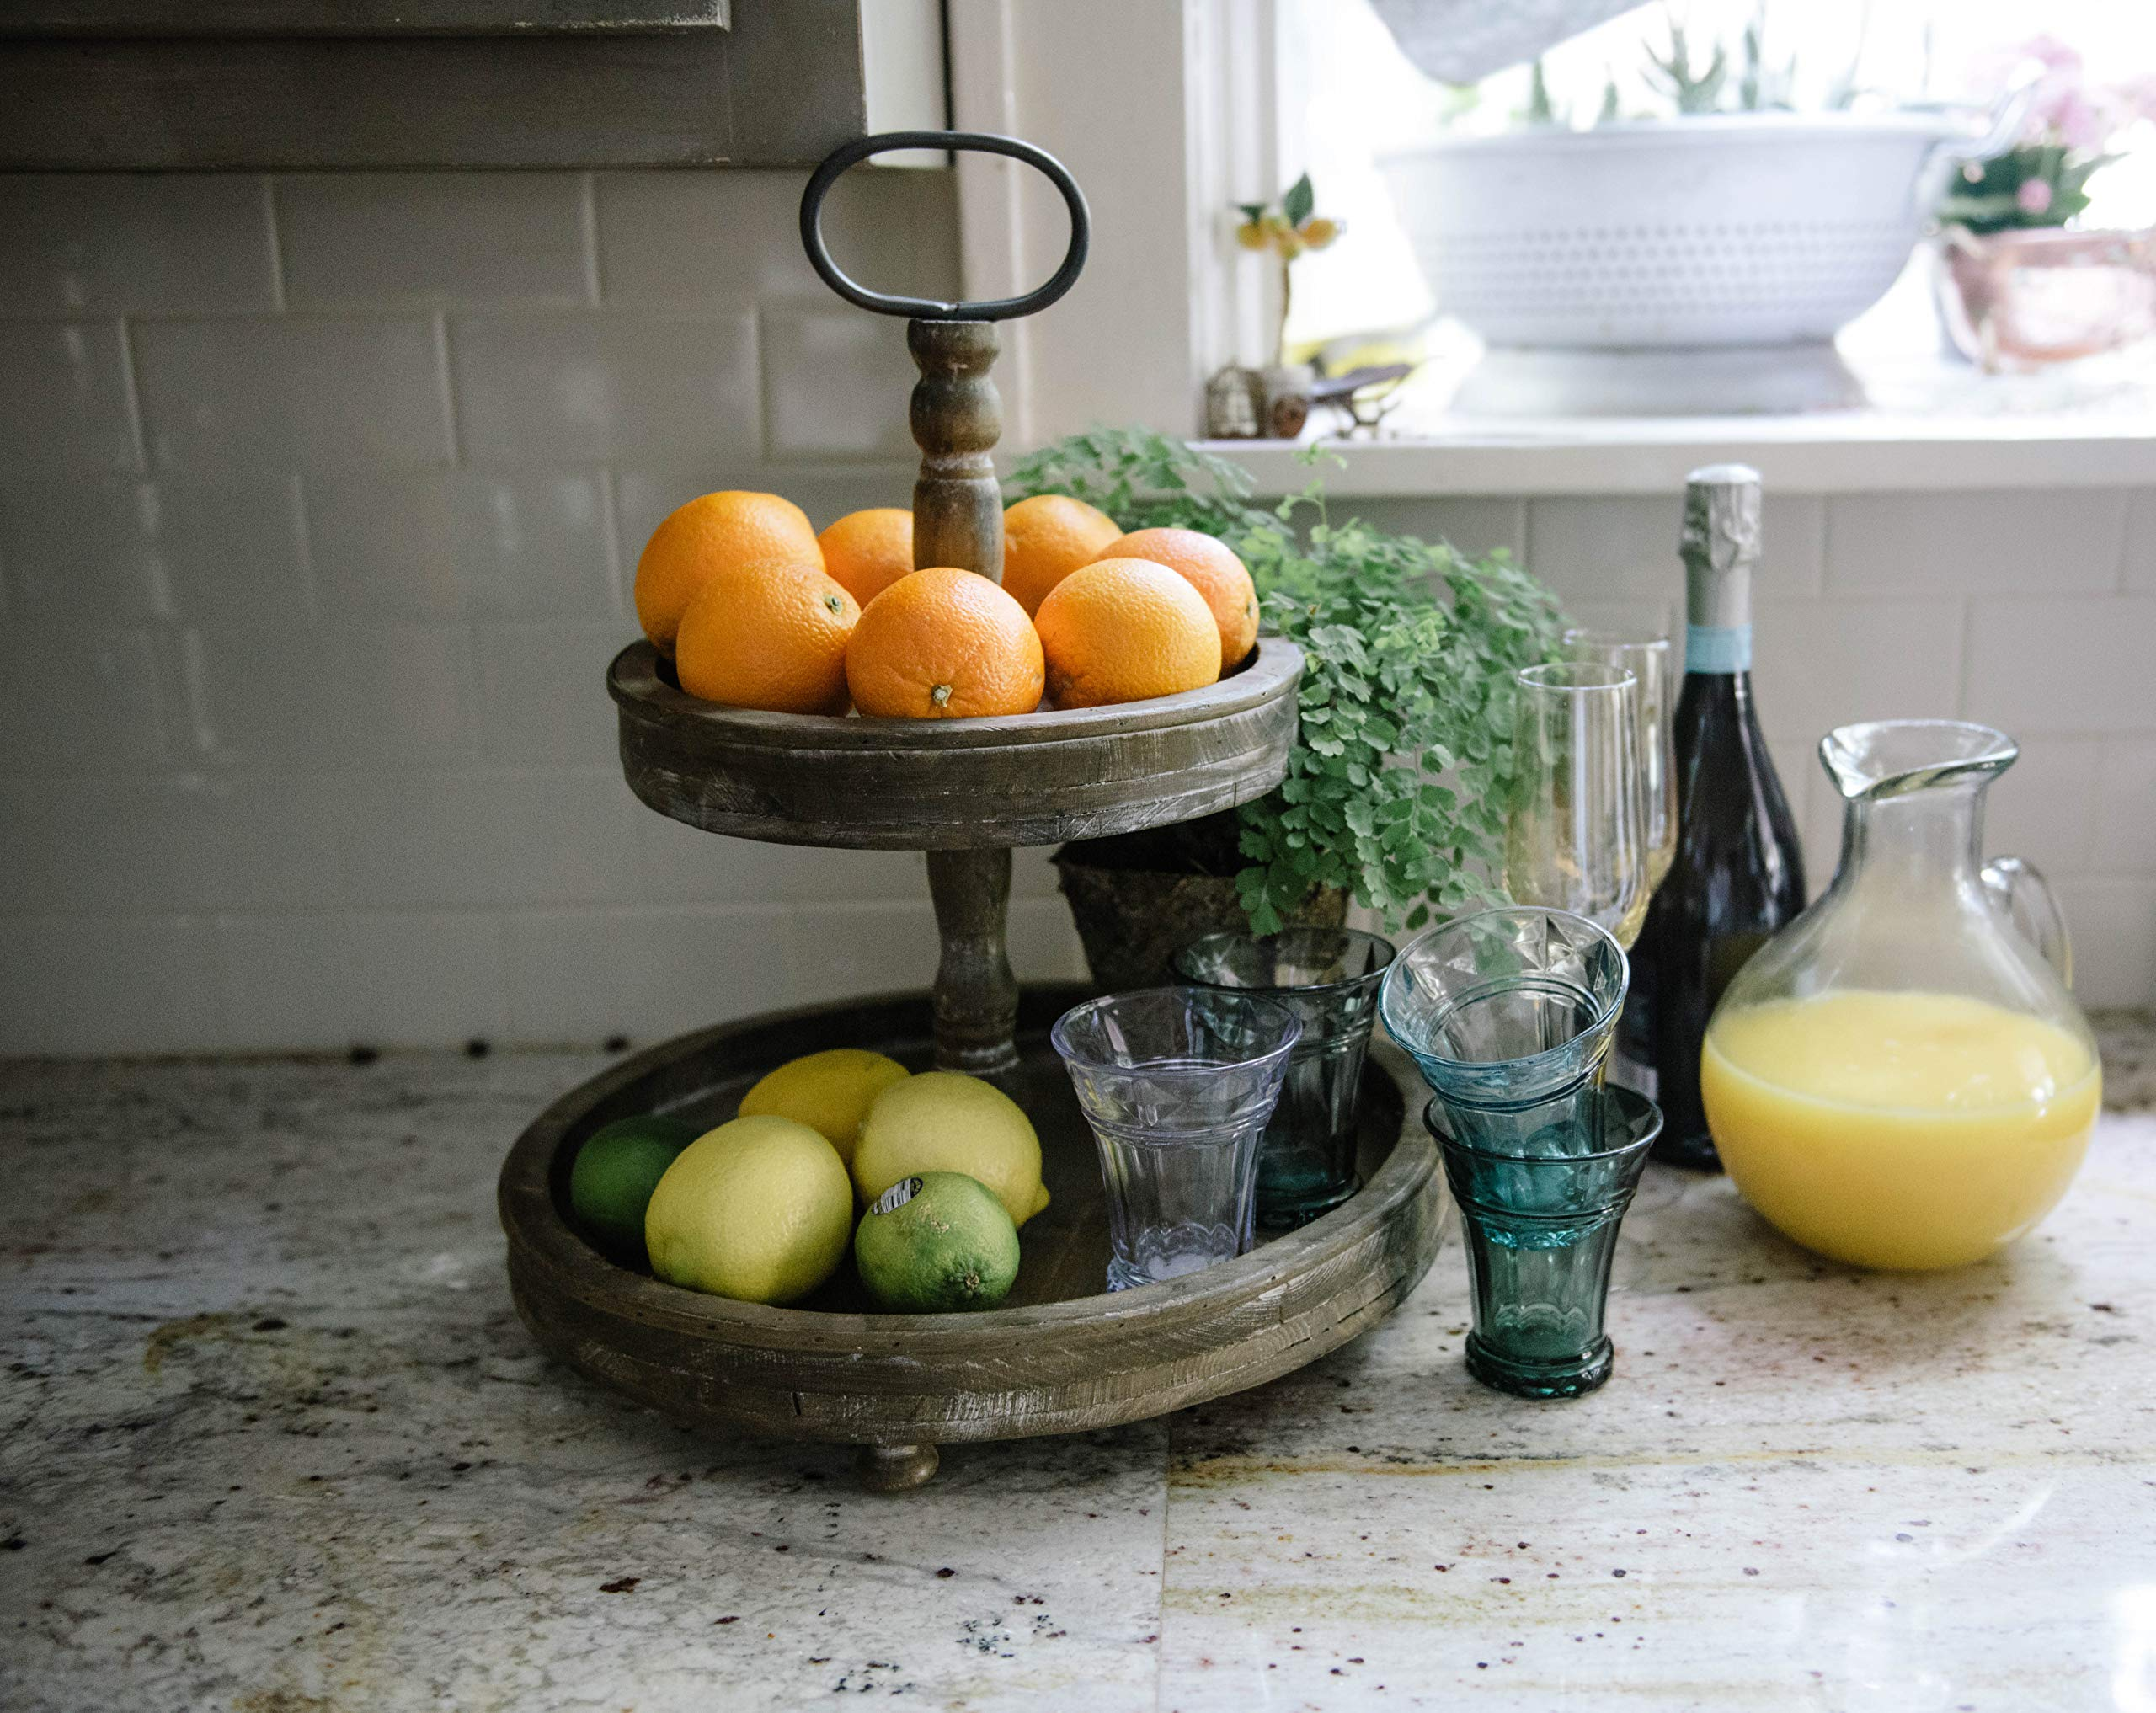 Creative Co-op DA4439 Wood 2-Tier Tray with Metal Handle by Creative Co-op (Image #4)